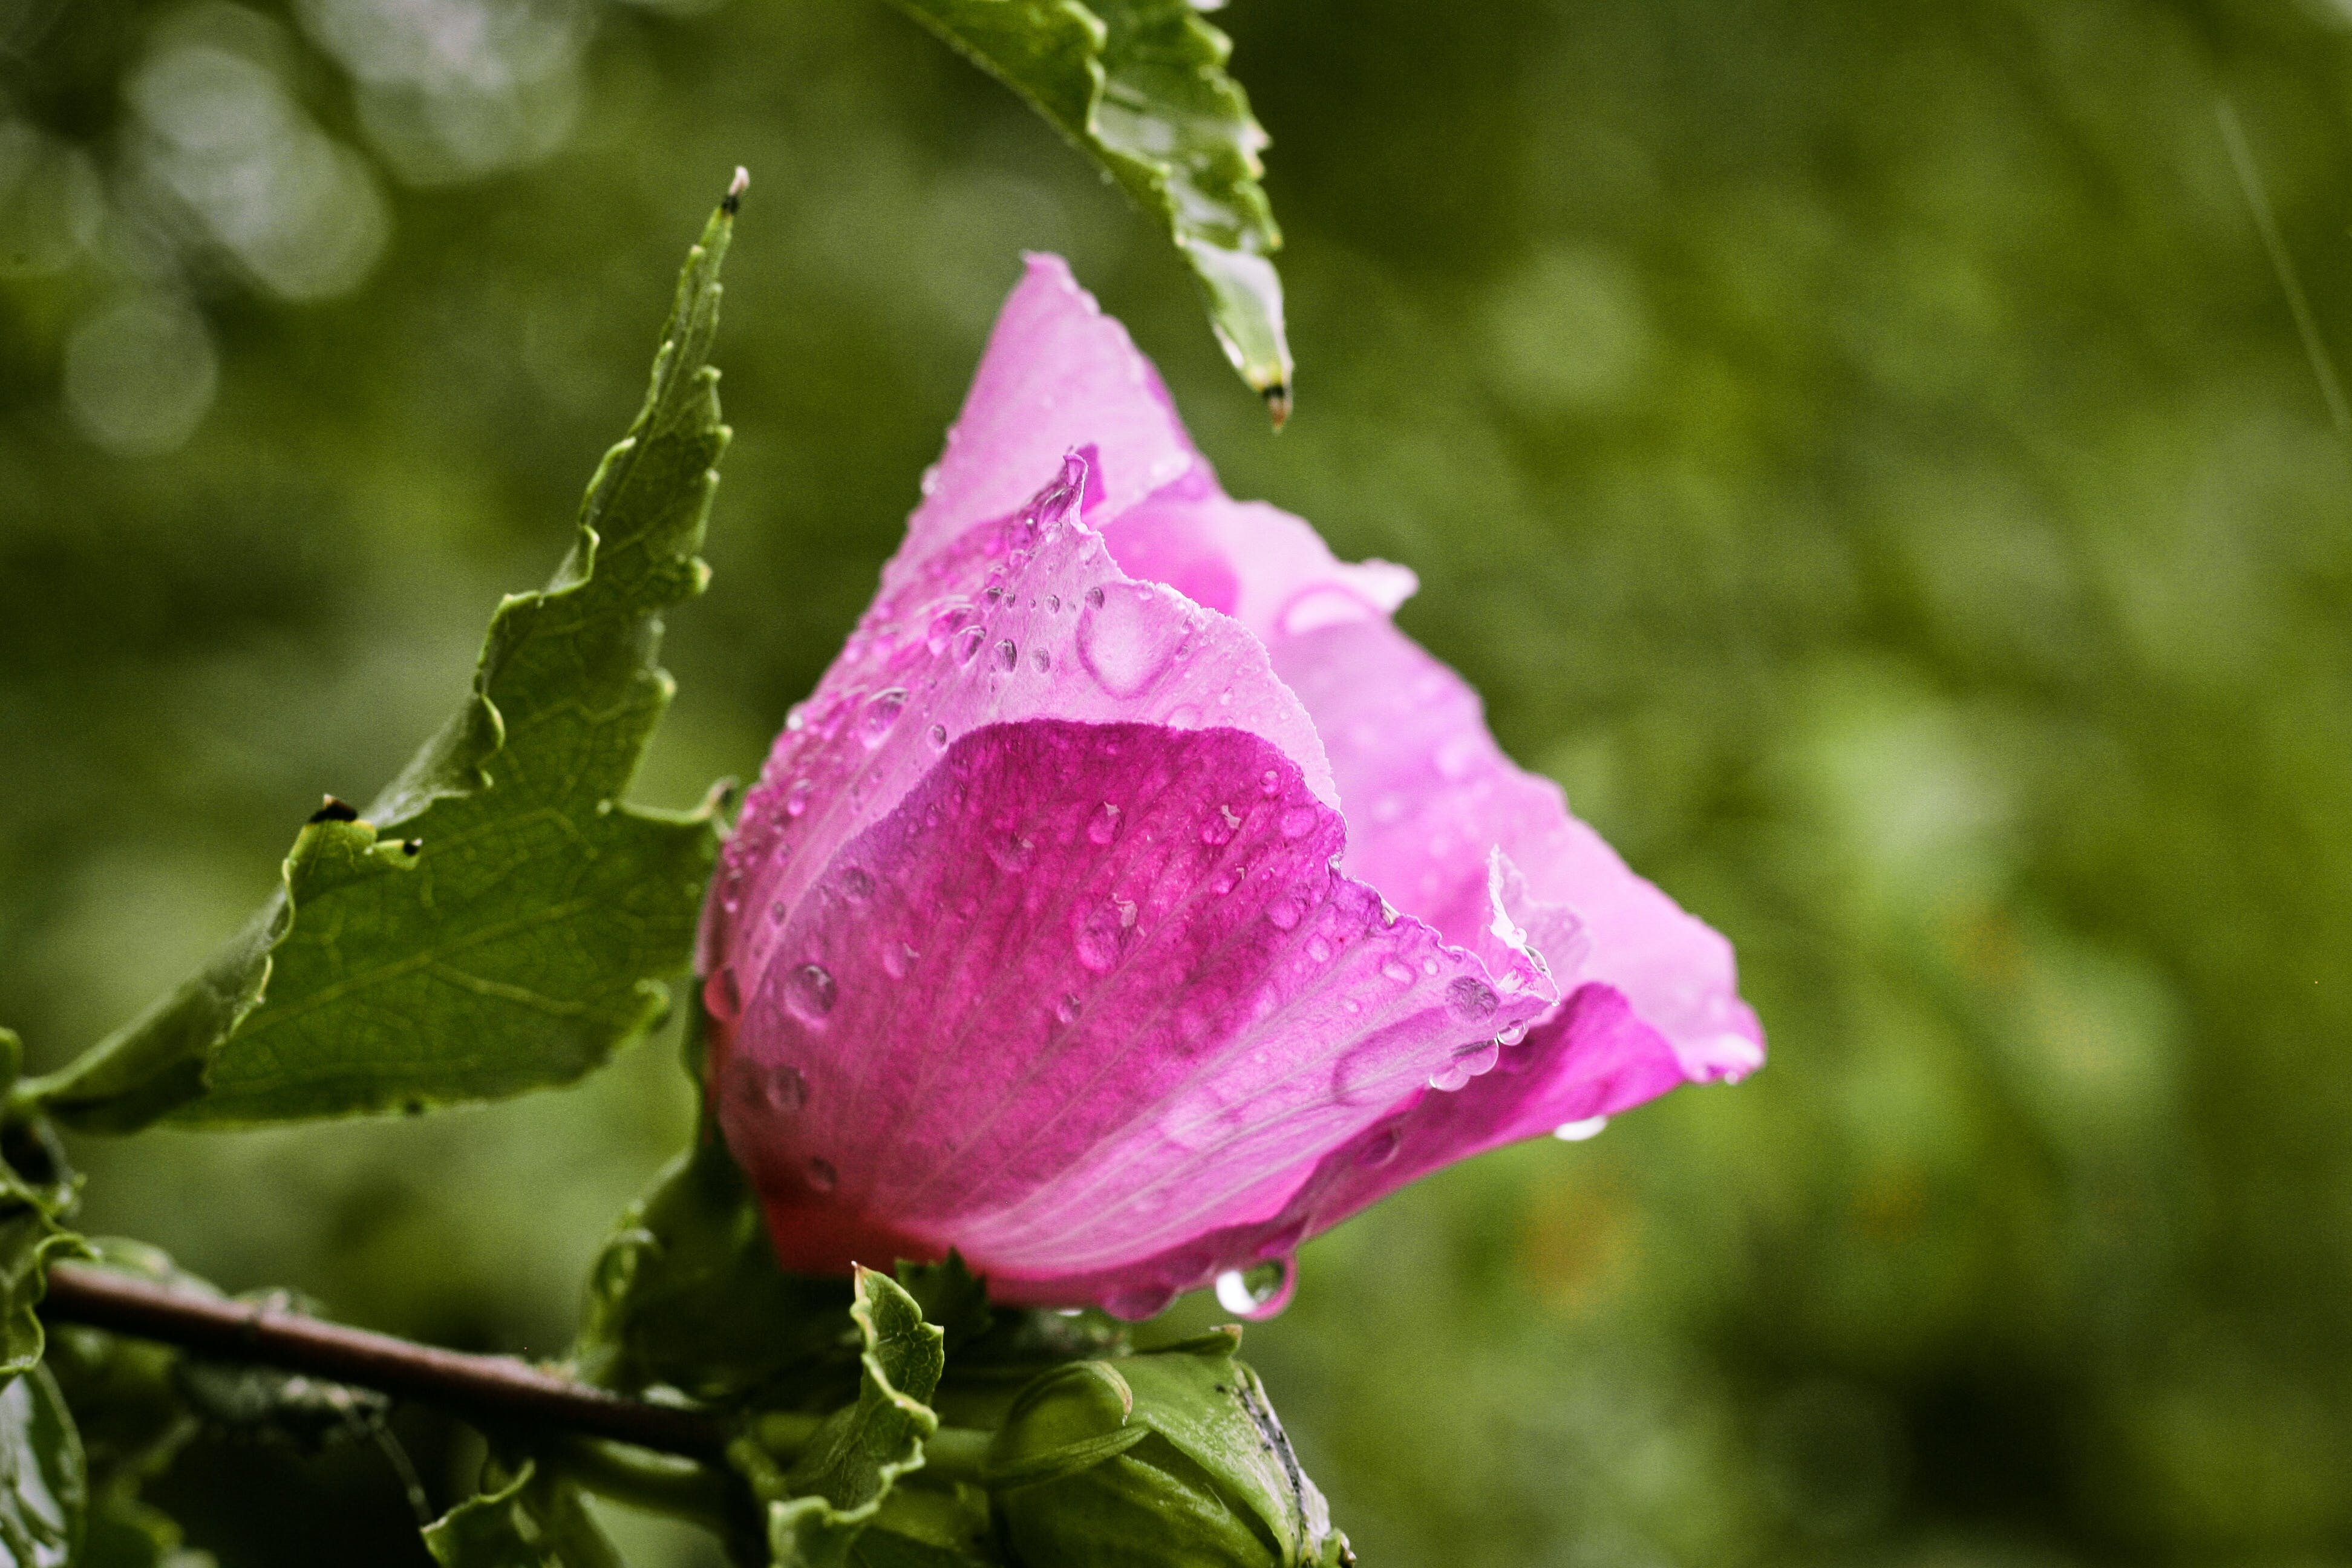 Closeup Photo of Pink Petaled Flower